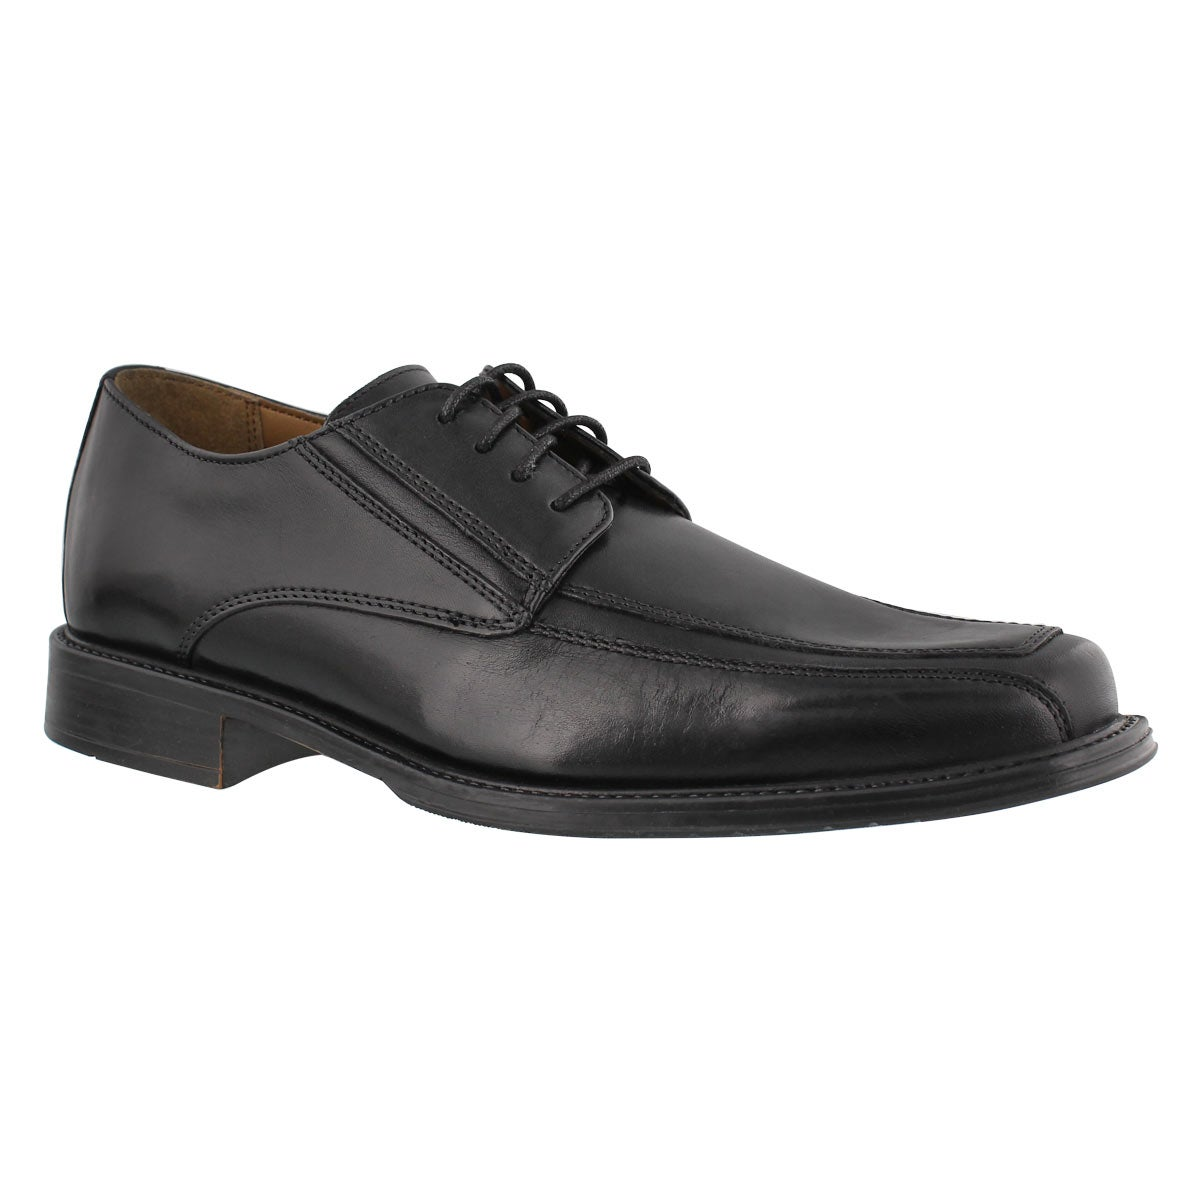 Clarks-Men-039-s-Driggs-Walk-Lace-Up-Dress-Shoe